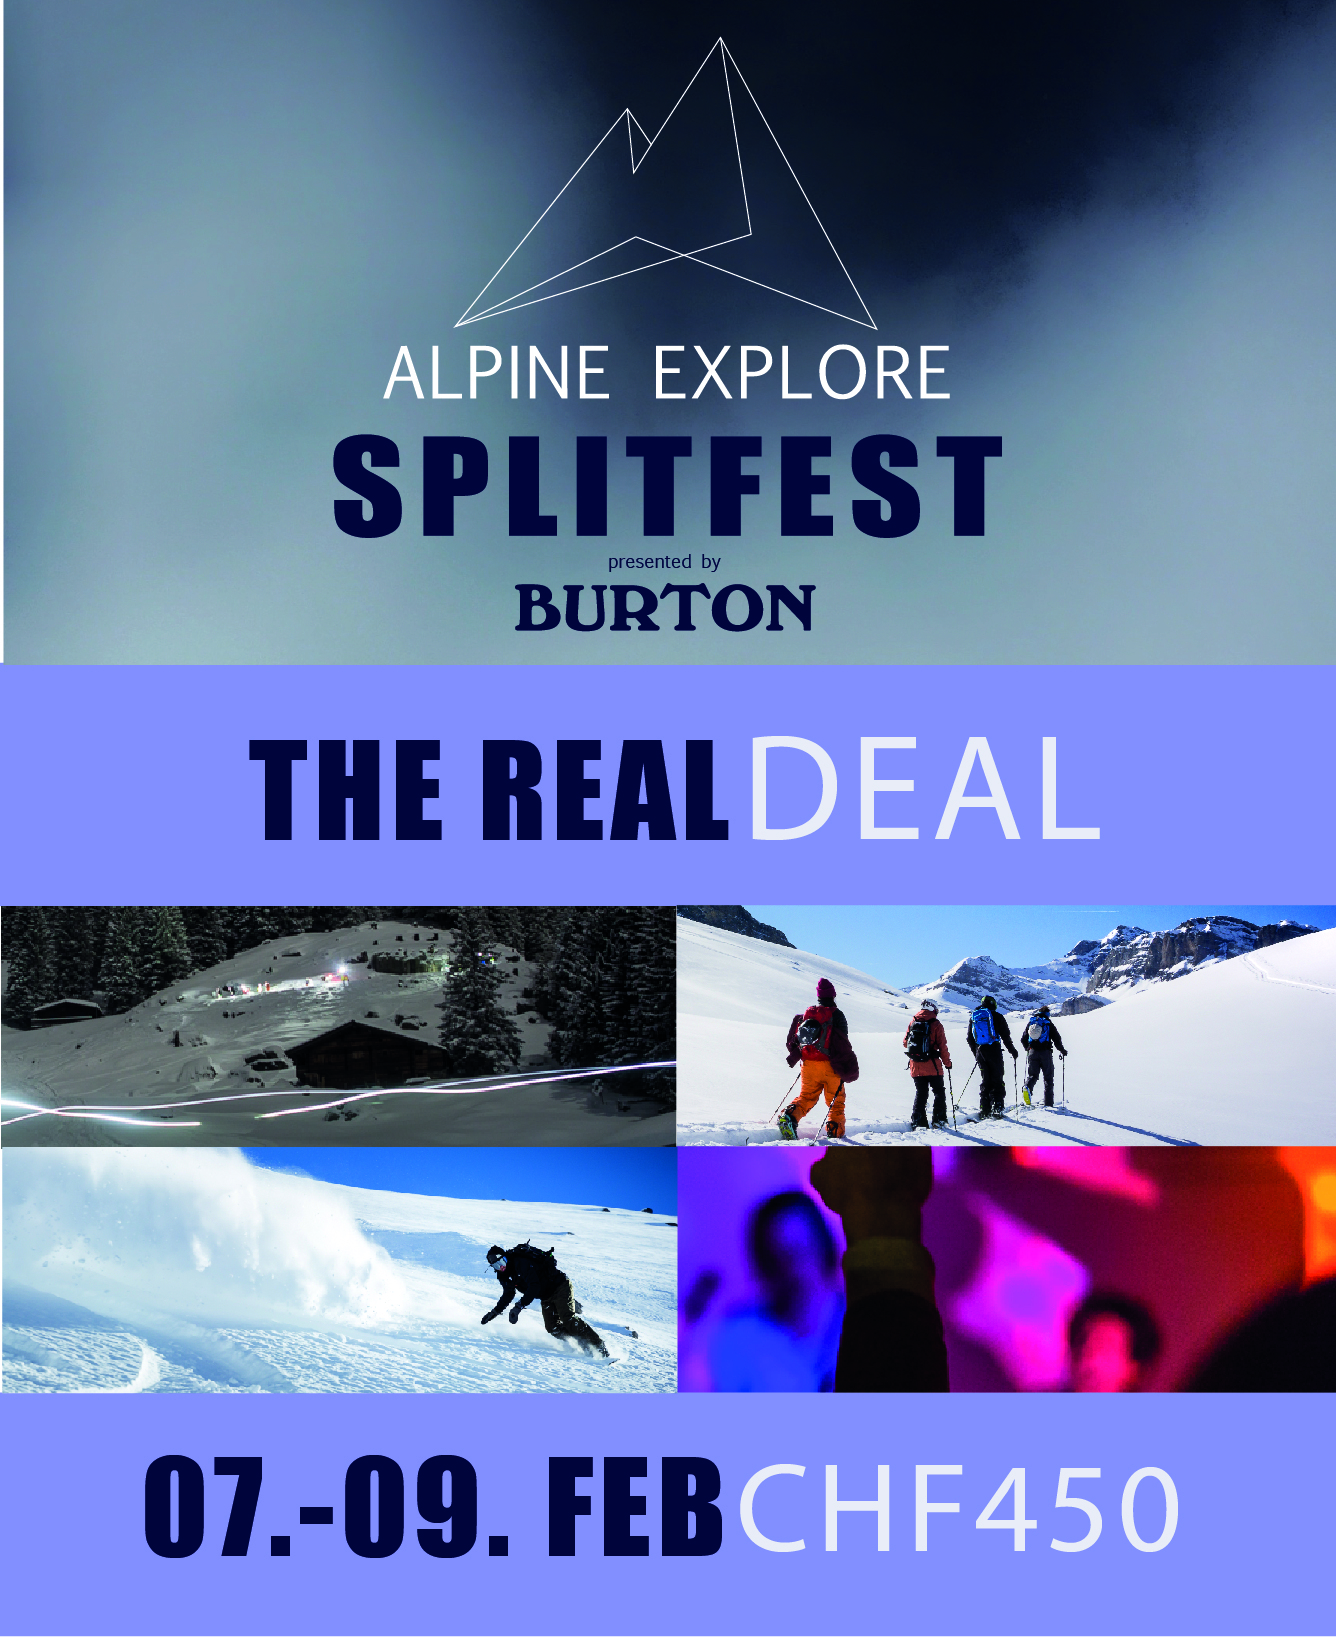 The Real Deal - Alpine Explore Splitfest 2020 003